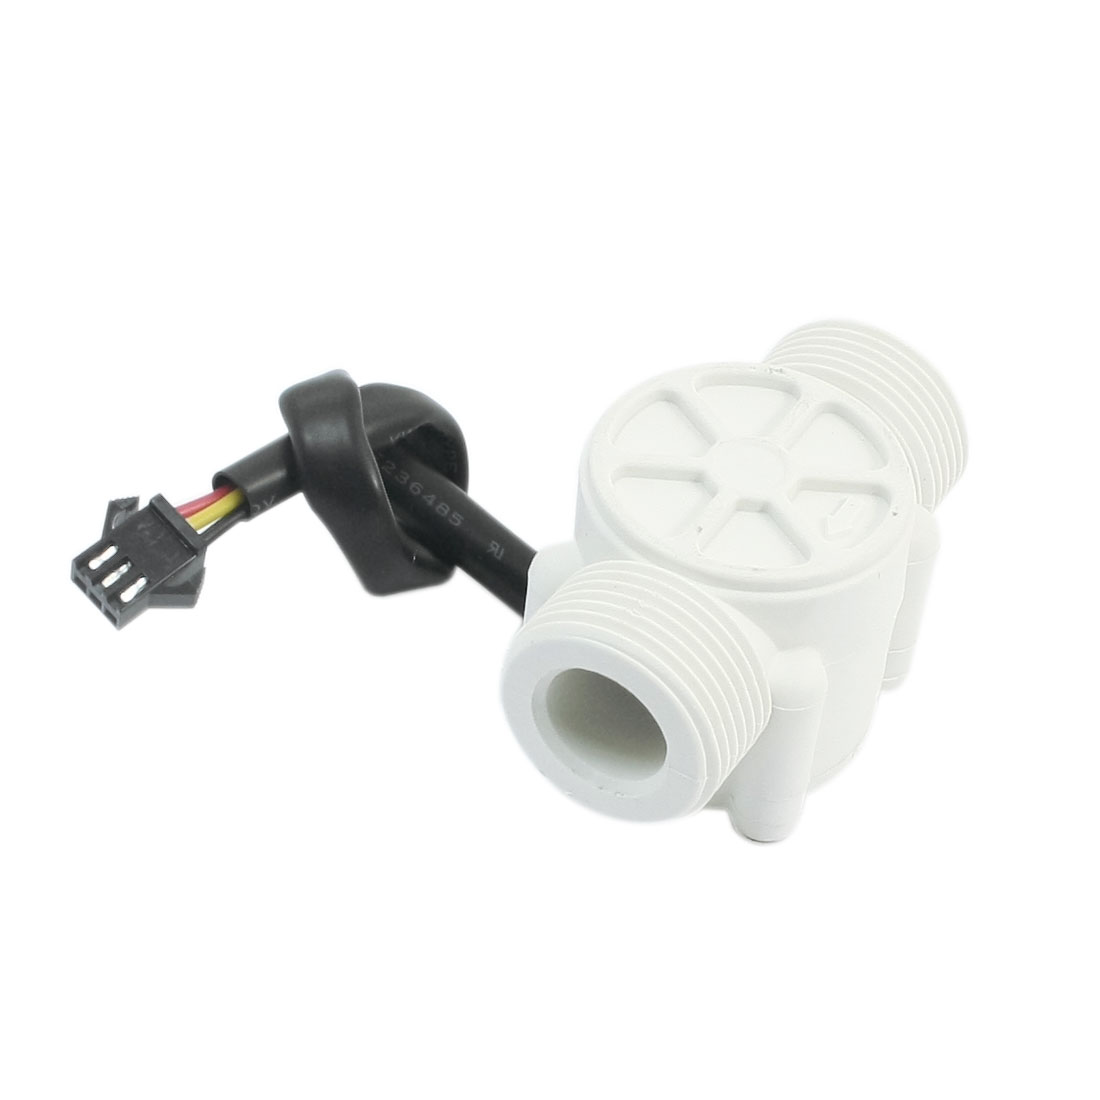 Plastic 1-30L/min 1.2Mpa G3/4 Male Thread Water Flow Rate Sensor Flowmeter